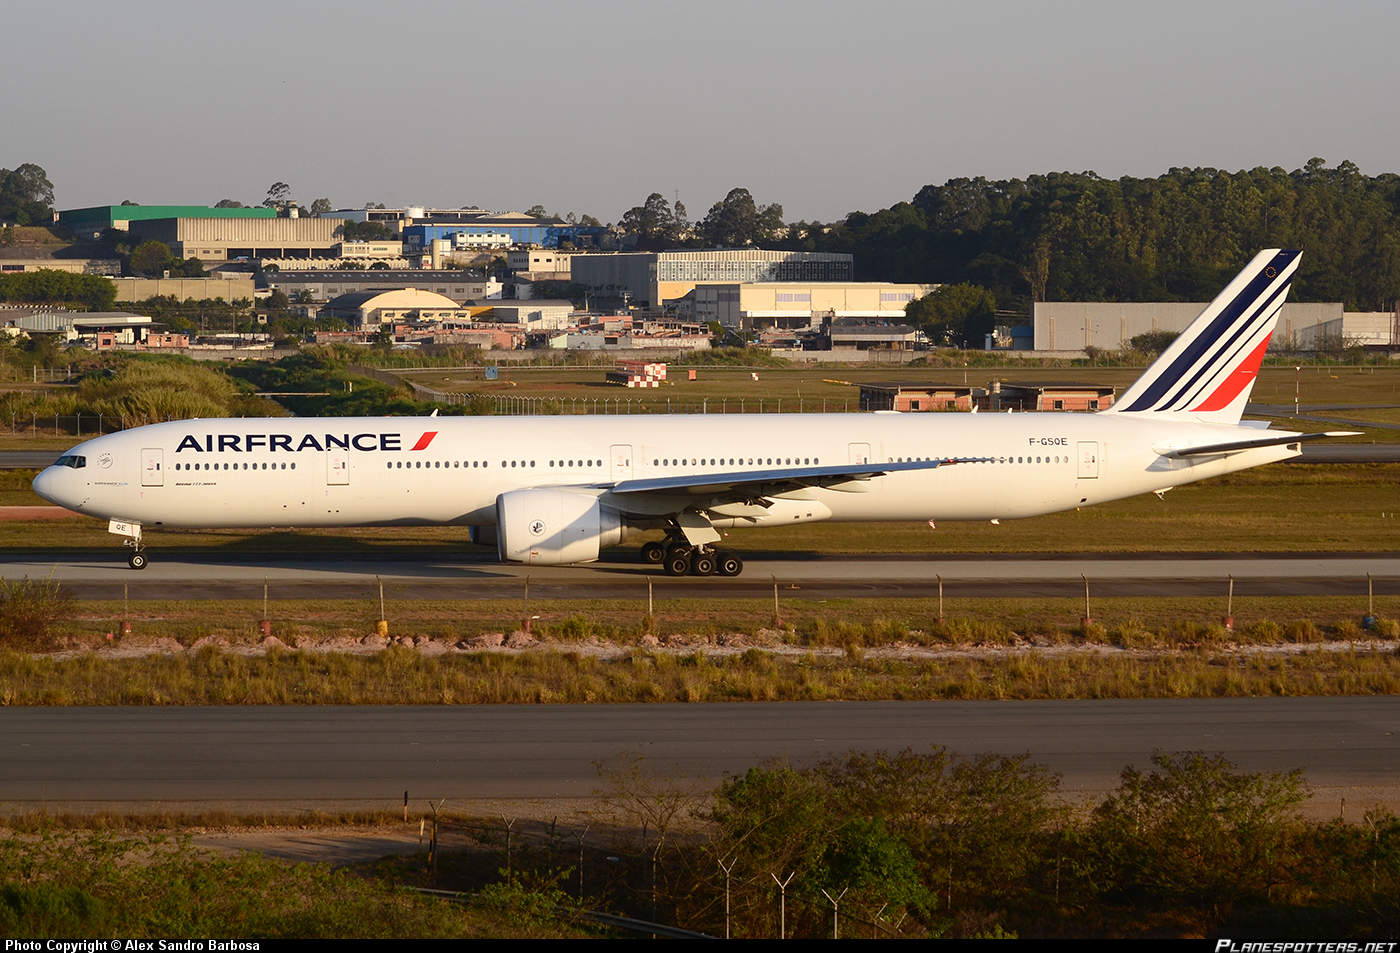 Air France 83 diverts to Montreal because of a threat